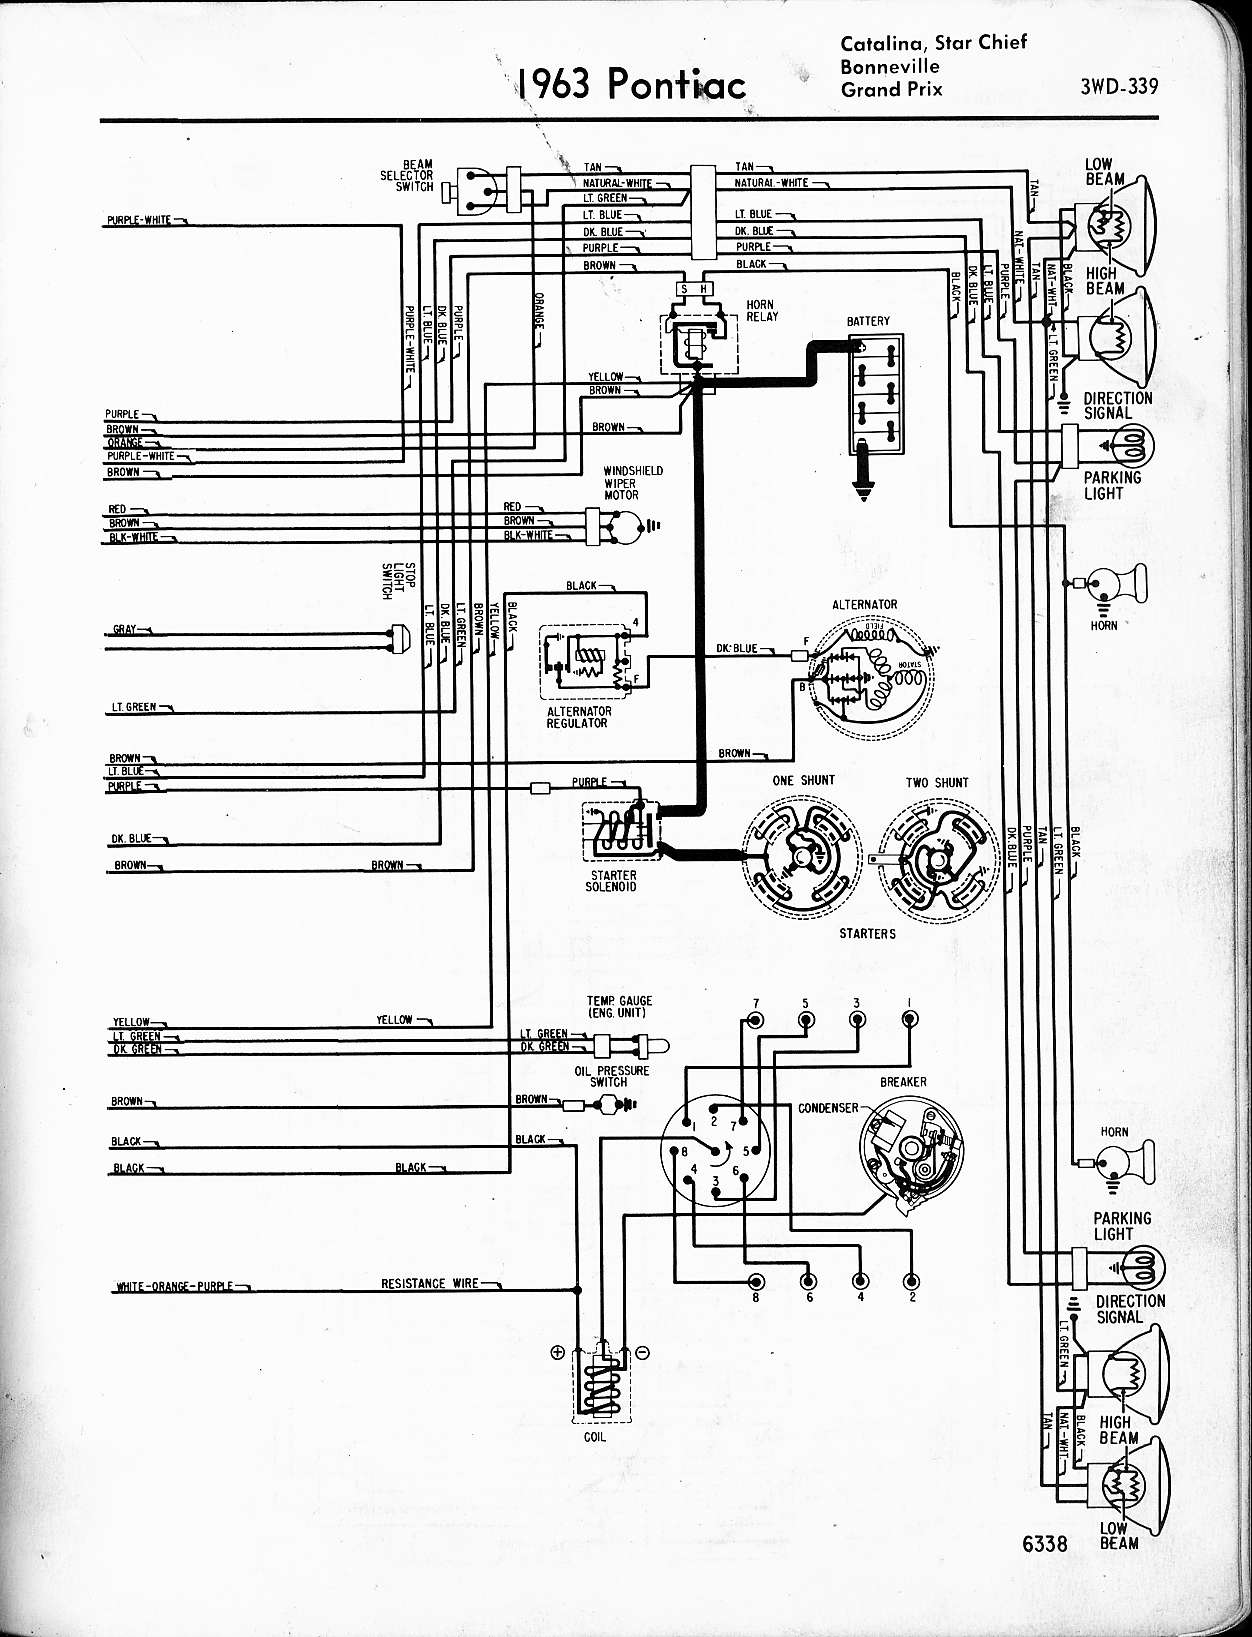 MWire5765 339 wallace racing wiring diagrams pontiac grand prix wiring diagrams at gsmx.co